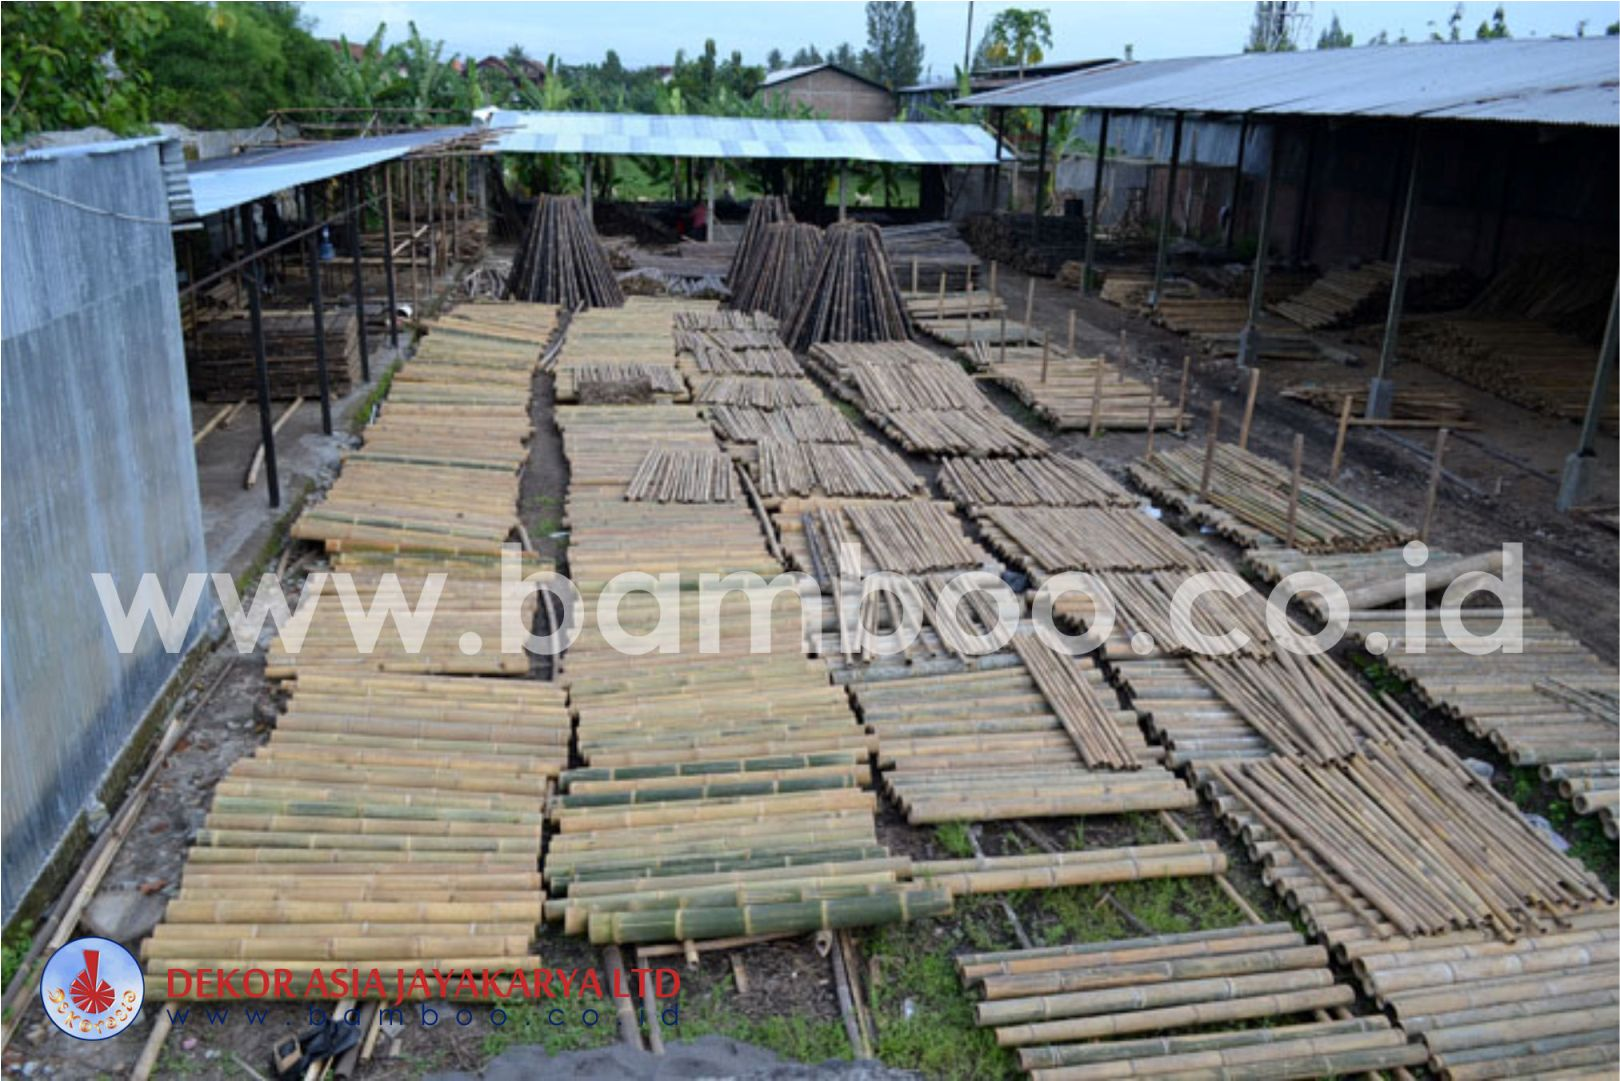 BLACK BAMBOO POLE AND NATURAL BAMBOO POLES